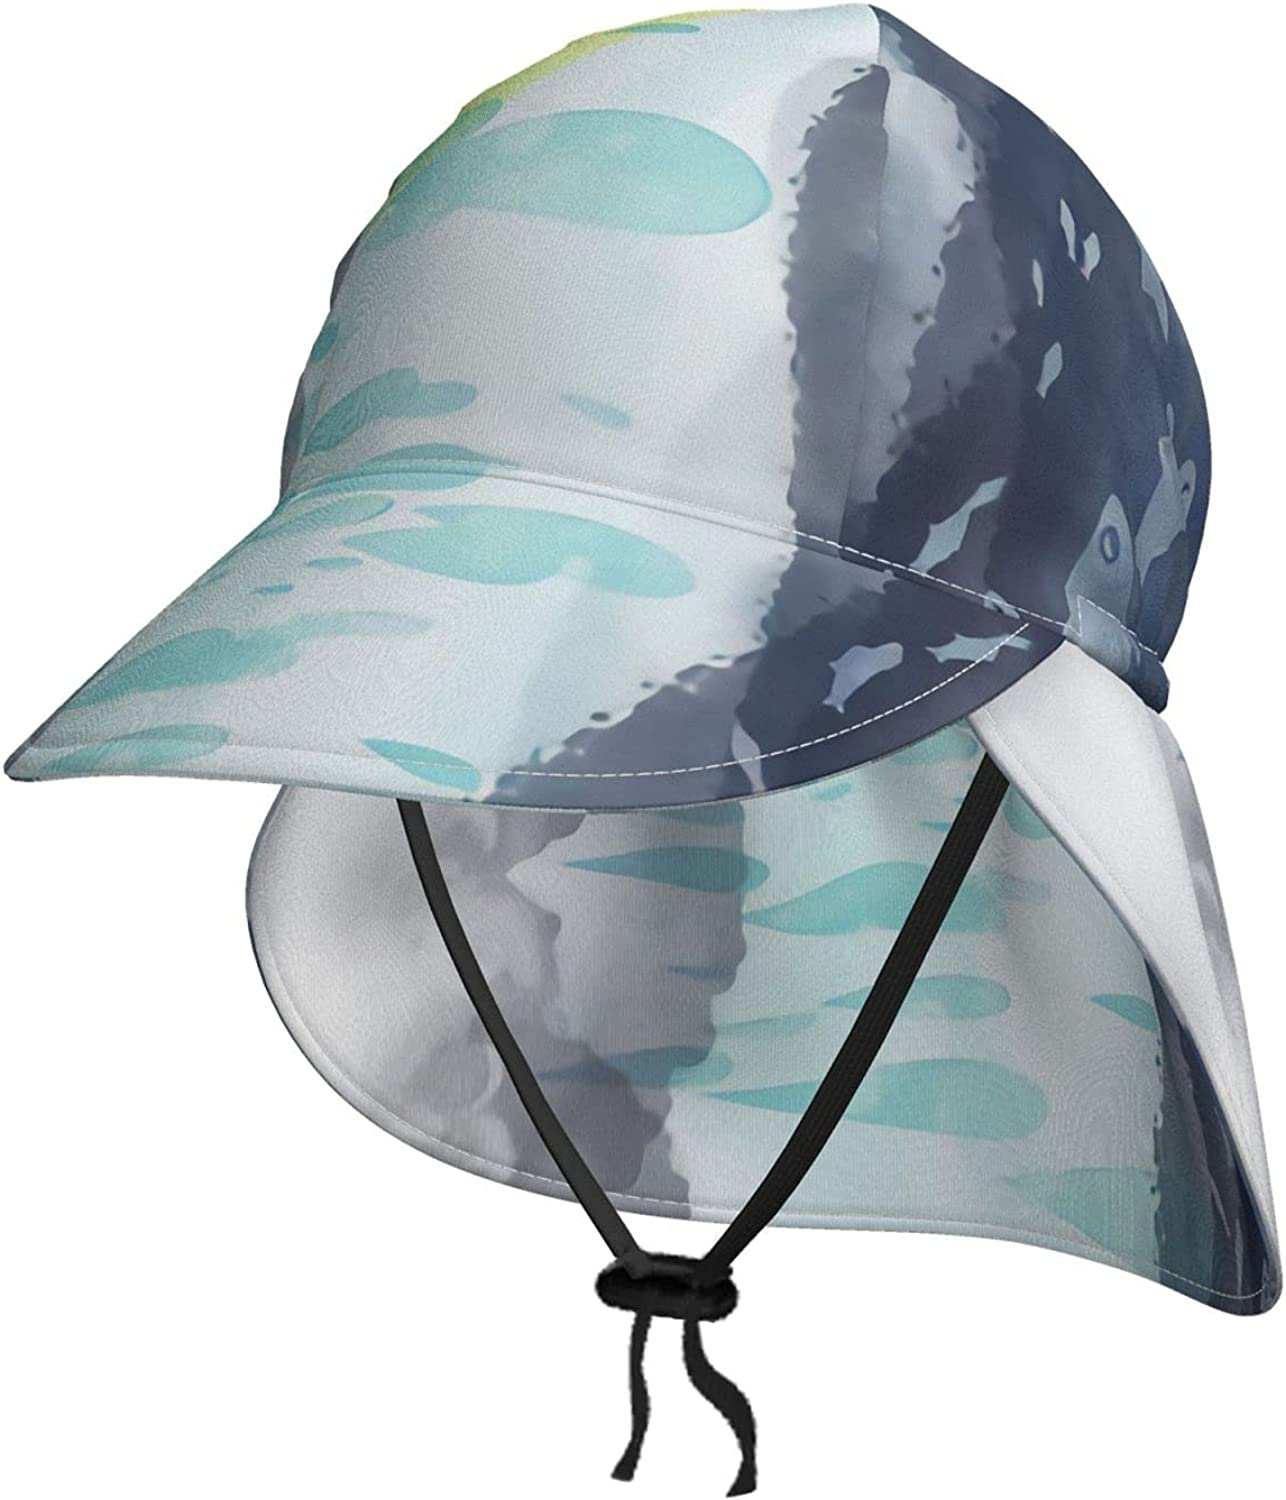 Fishes Don't Mind The Rain Pillowcase Baby Sun Hat Toddler Hats for Boys Baby Hat Girls Hats Caps Kids Beach Hat Black